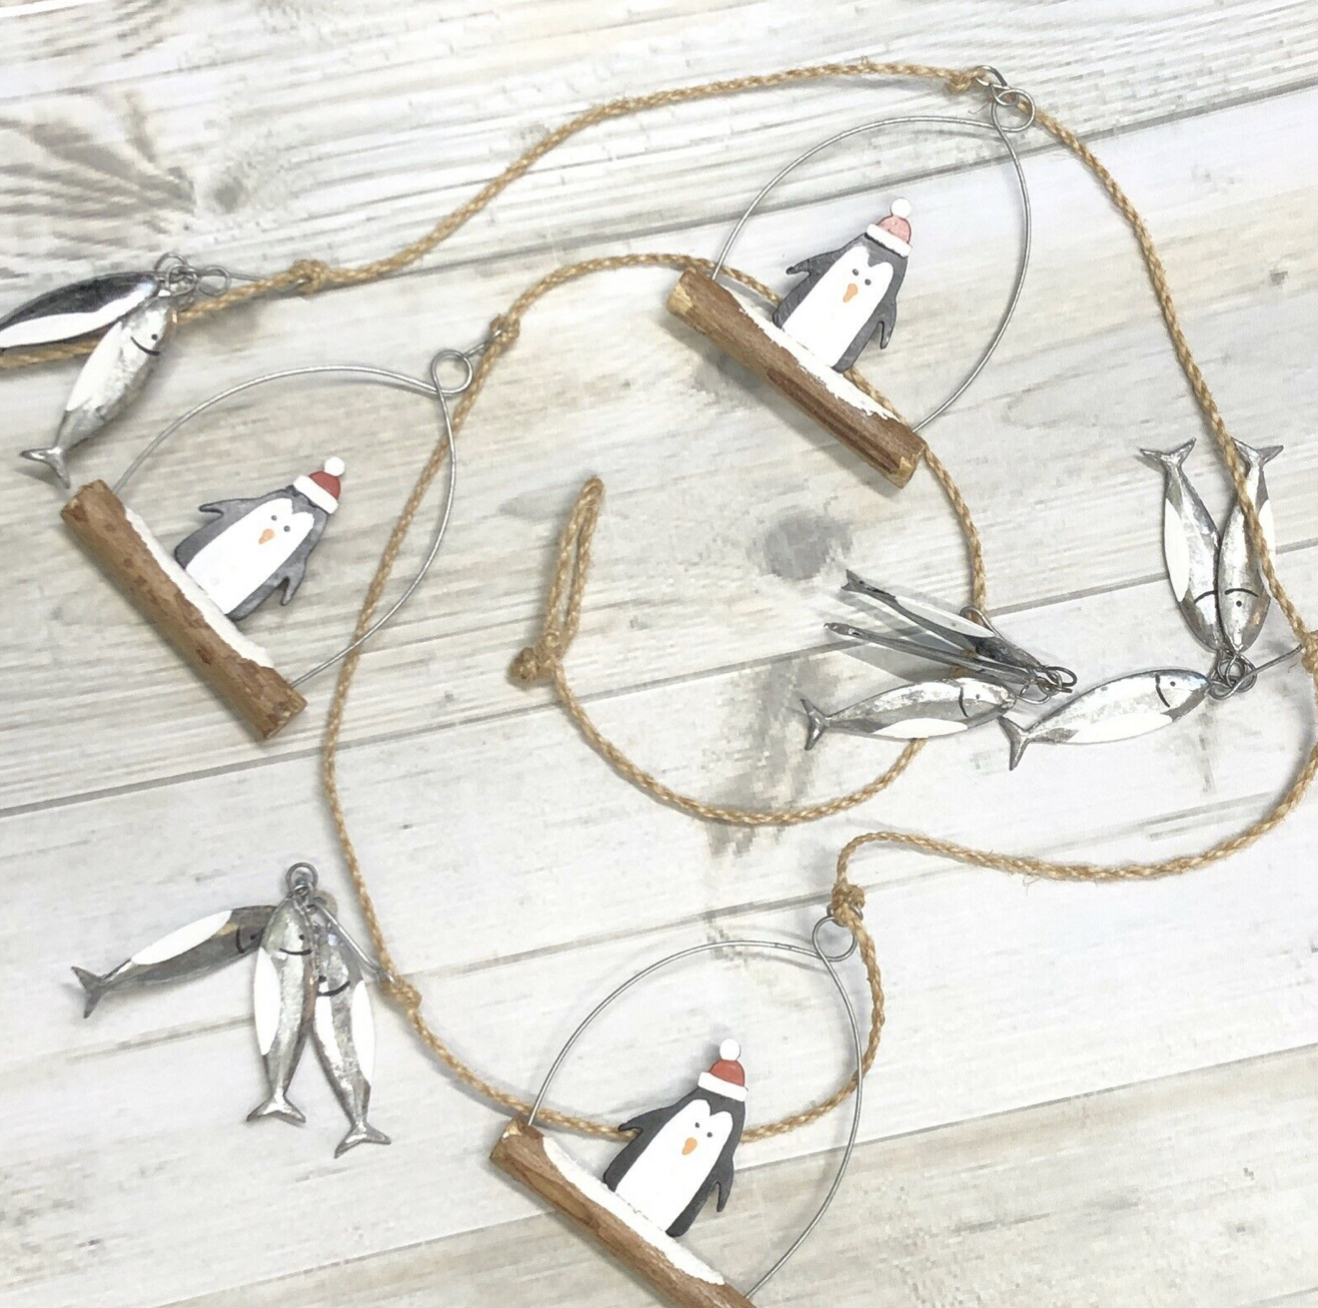 Christmas penguins & fish garland. Festive bunting by shoeless joe